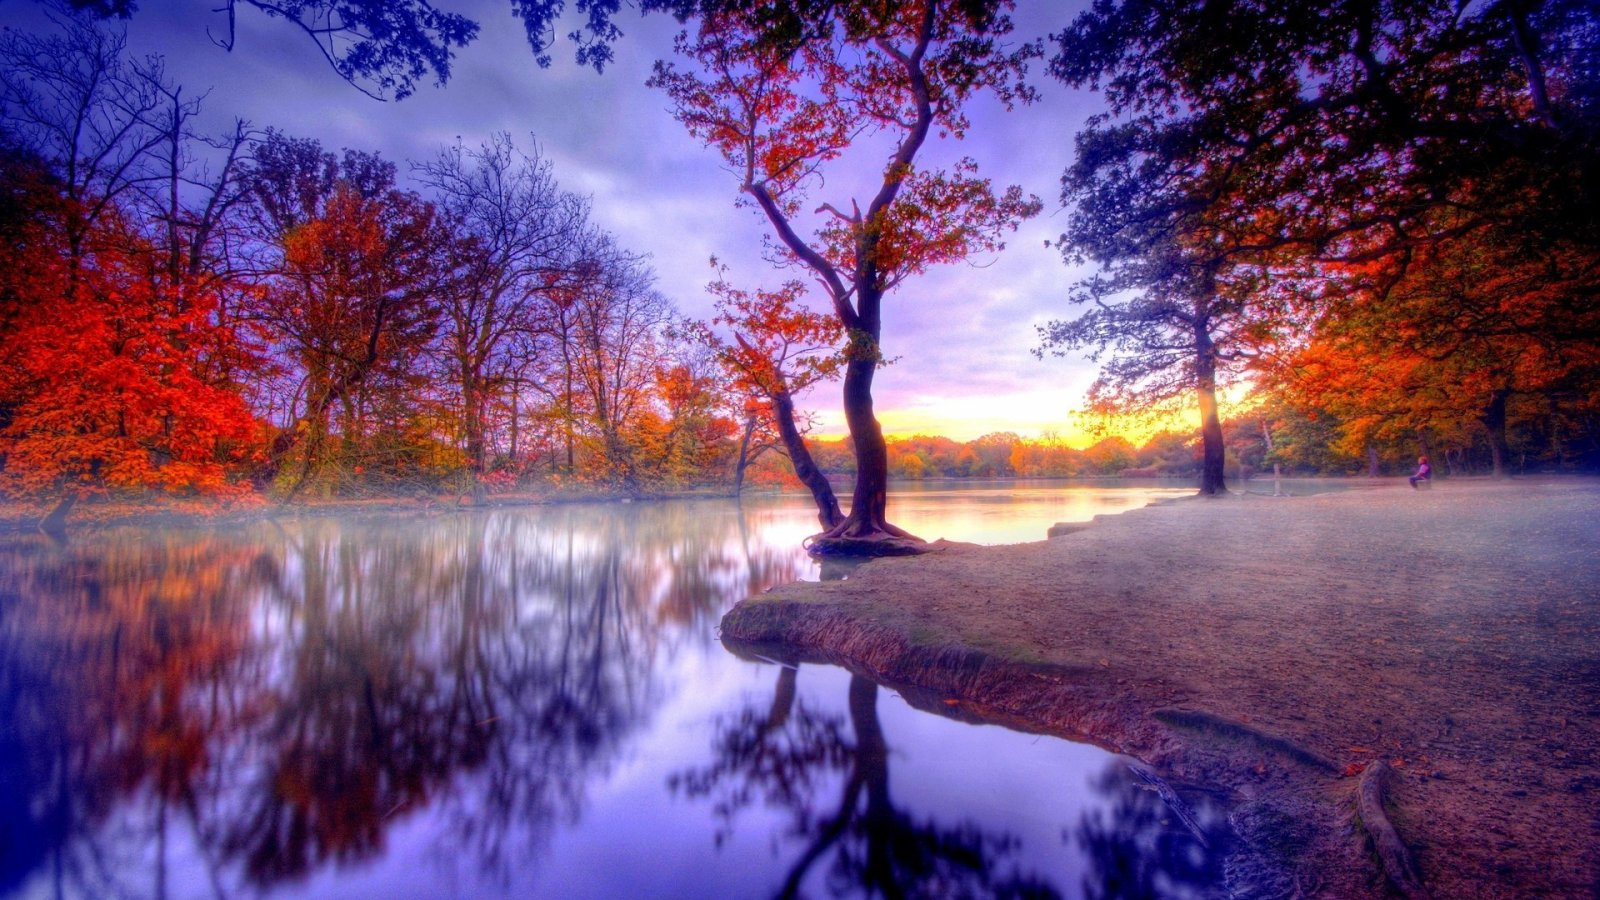 Scenery Wallpaper Download Free